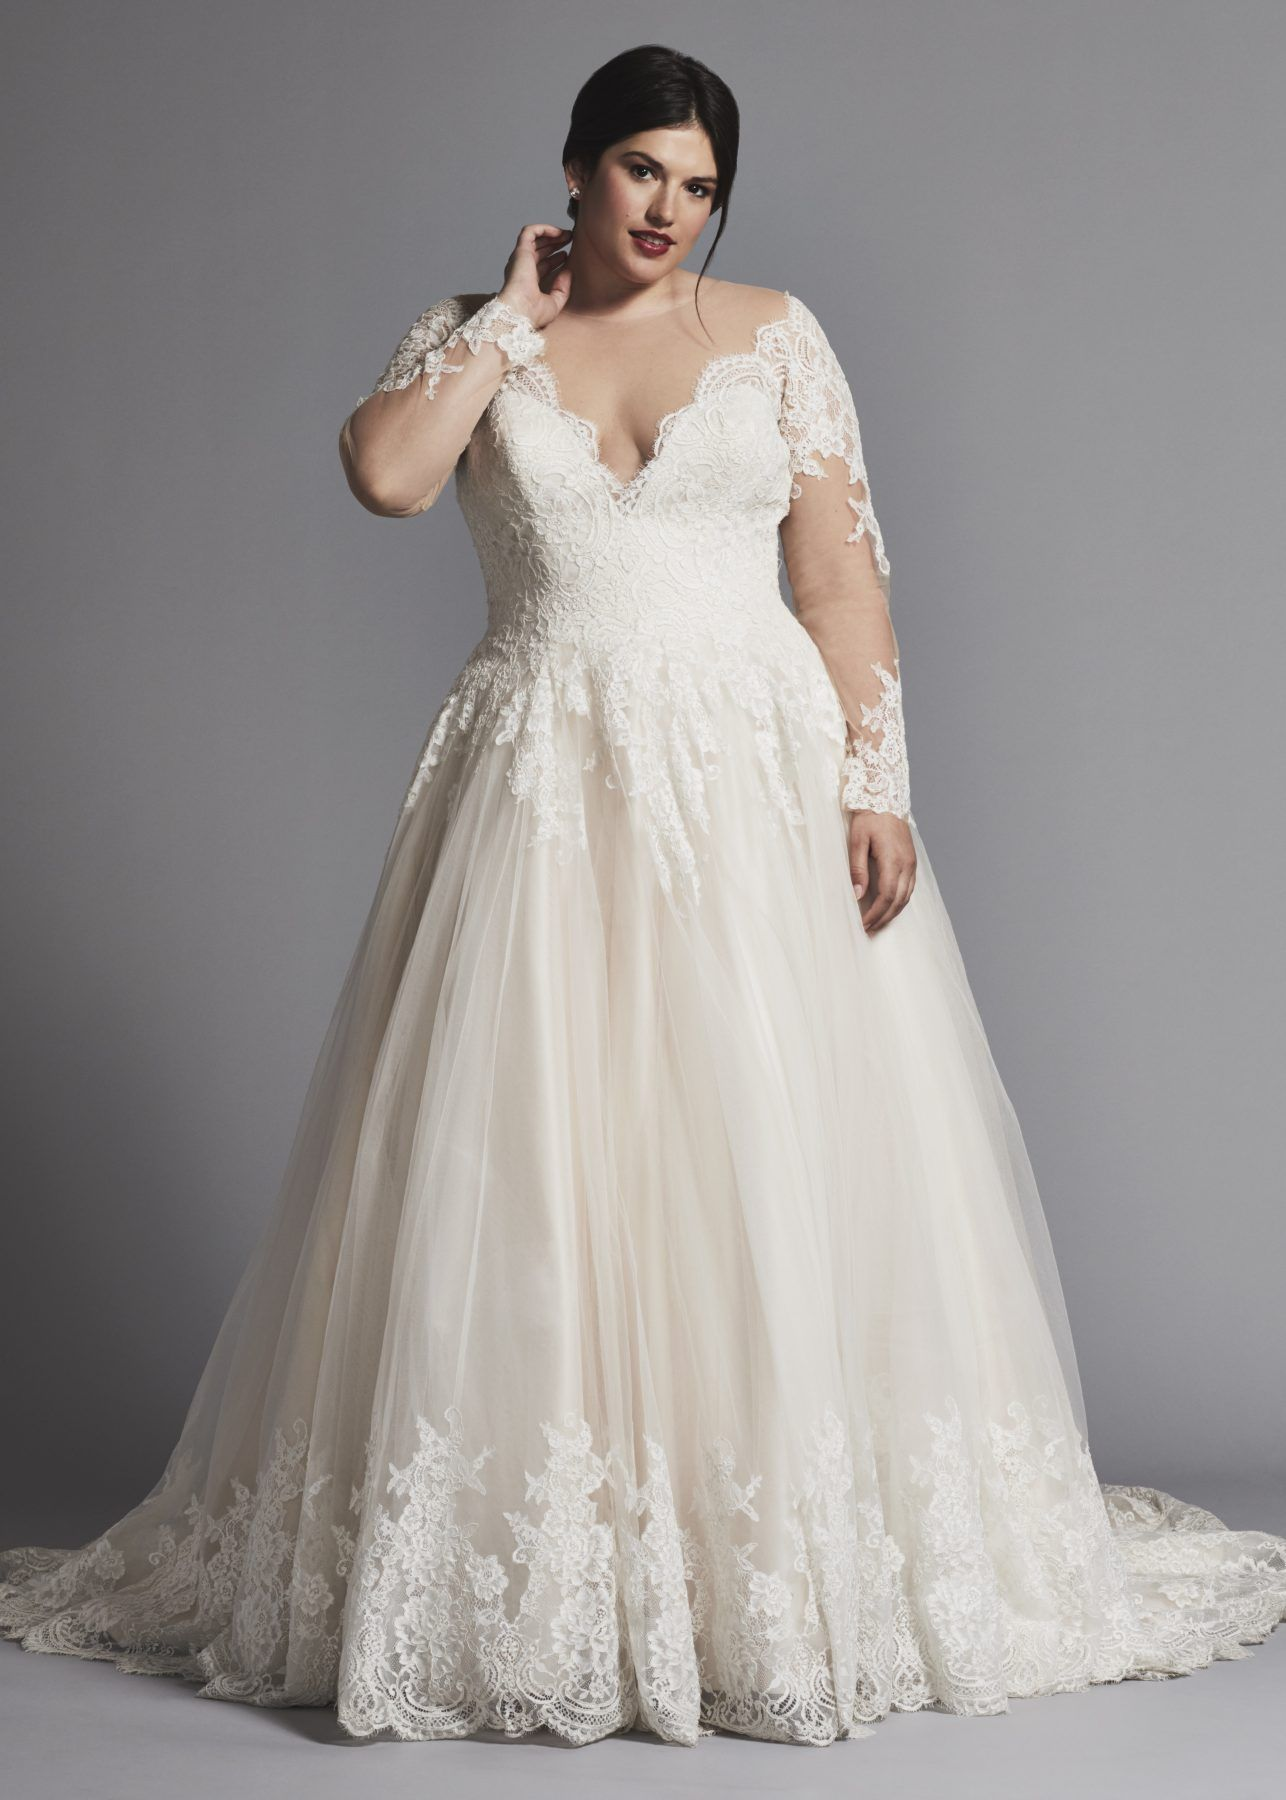 5492ea48c2e6 Plus-size wedding dress A-LINE LACE WEDDING DRESS WITH ILLUSION LONG SLEEVES  by DANIELLE CAPRESE